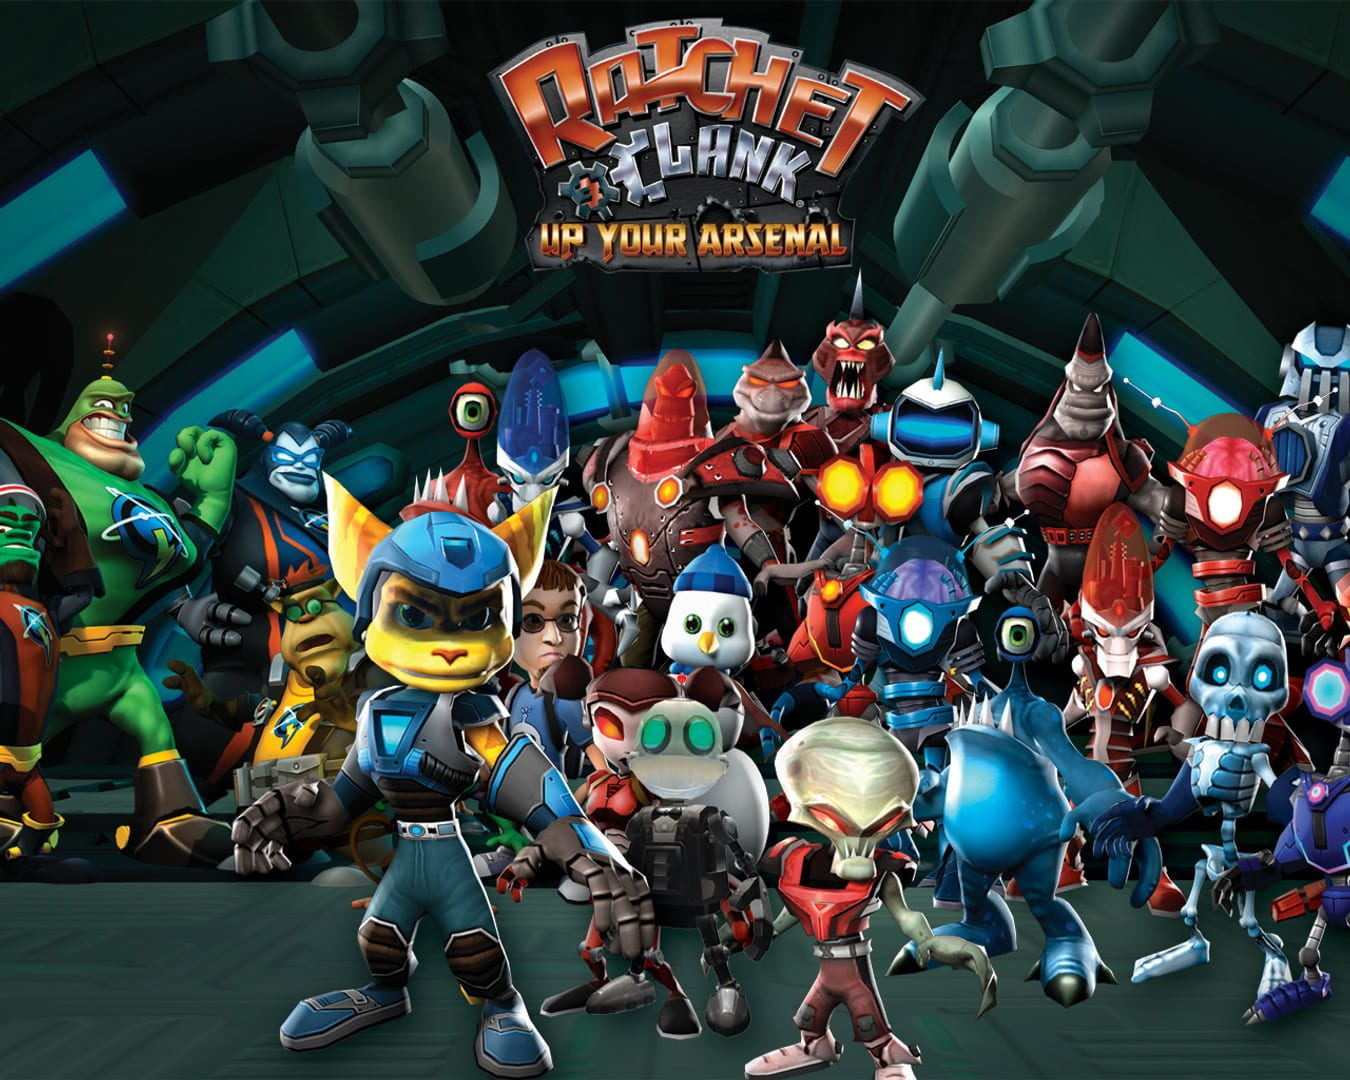 ratchet and clank up your arsenal pc download